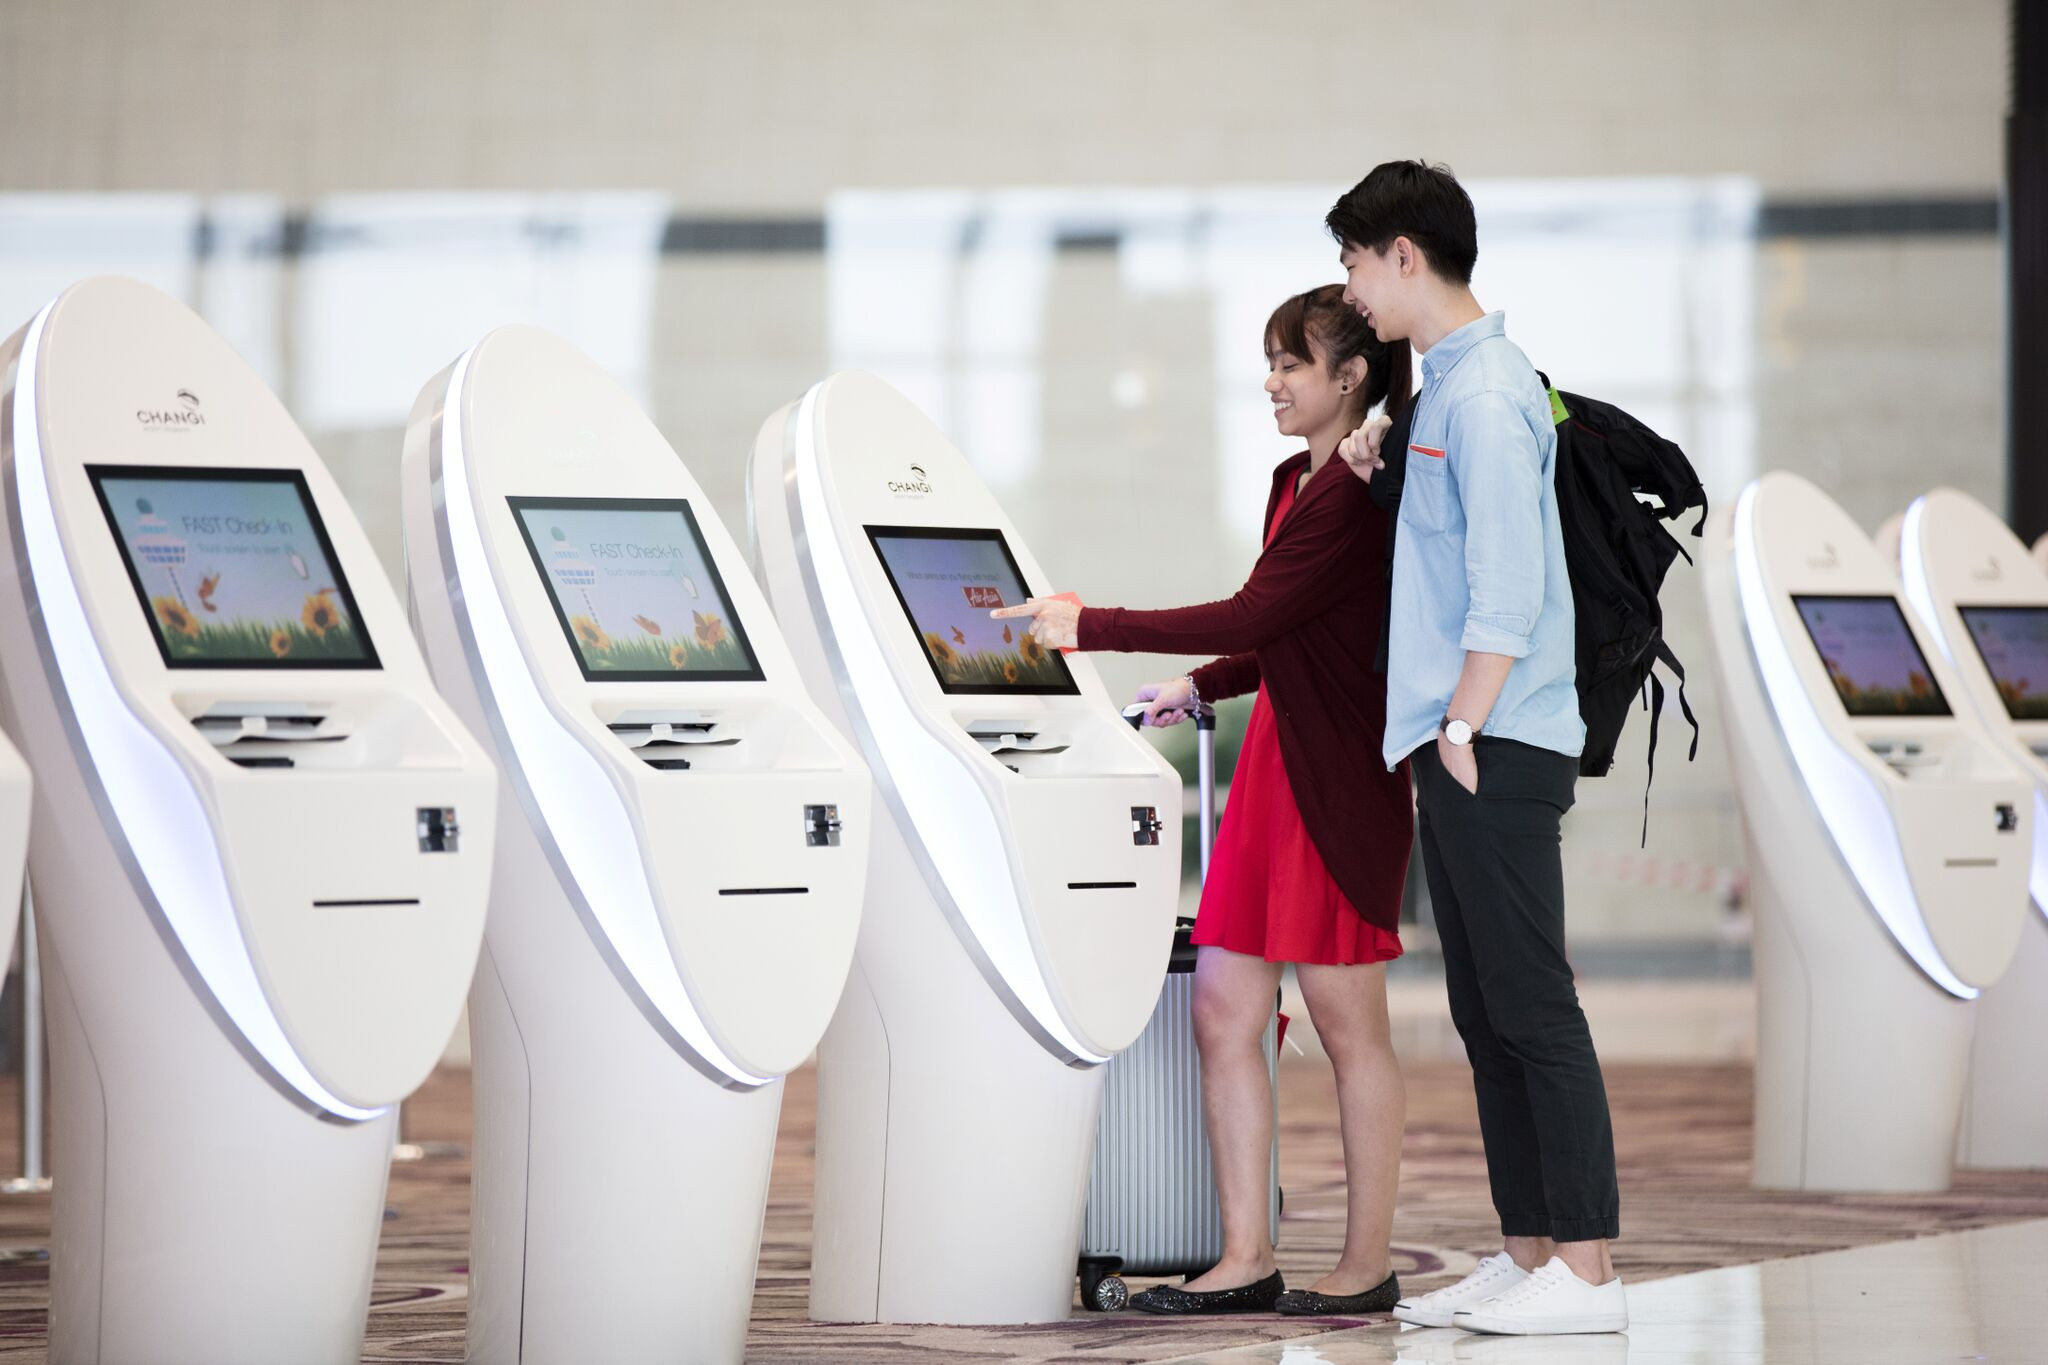 Automated check-in kiosks Photo: Changi Airport Group